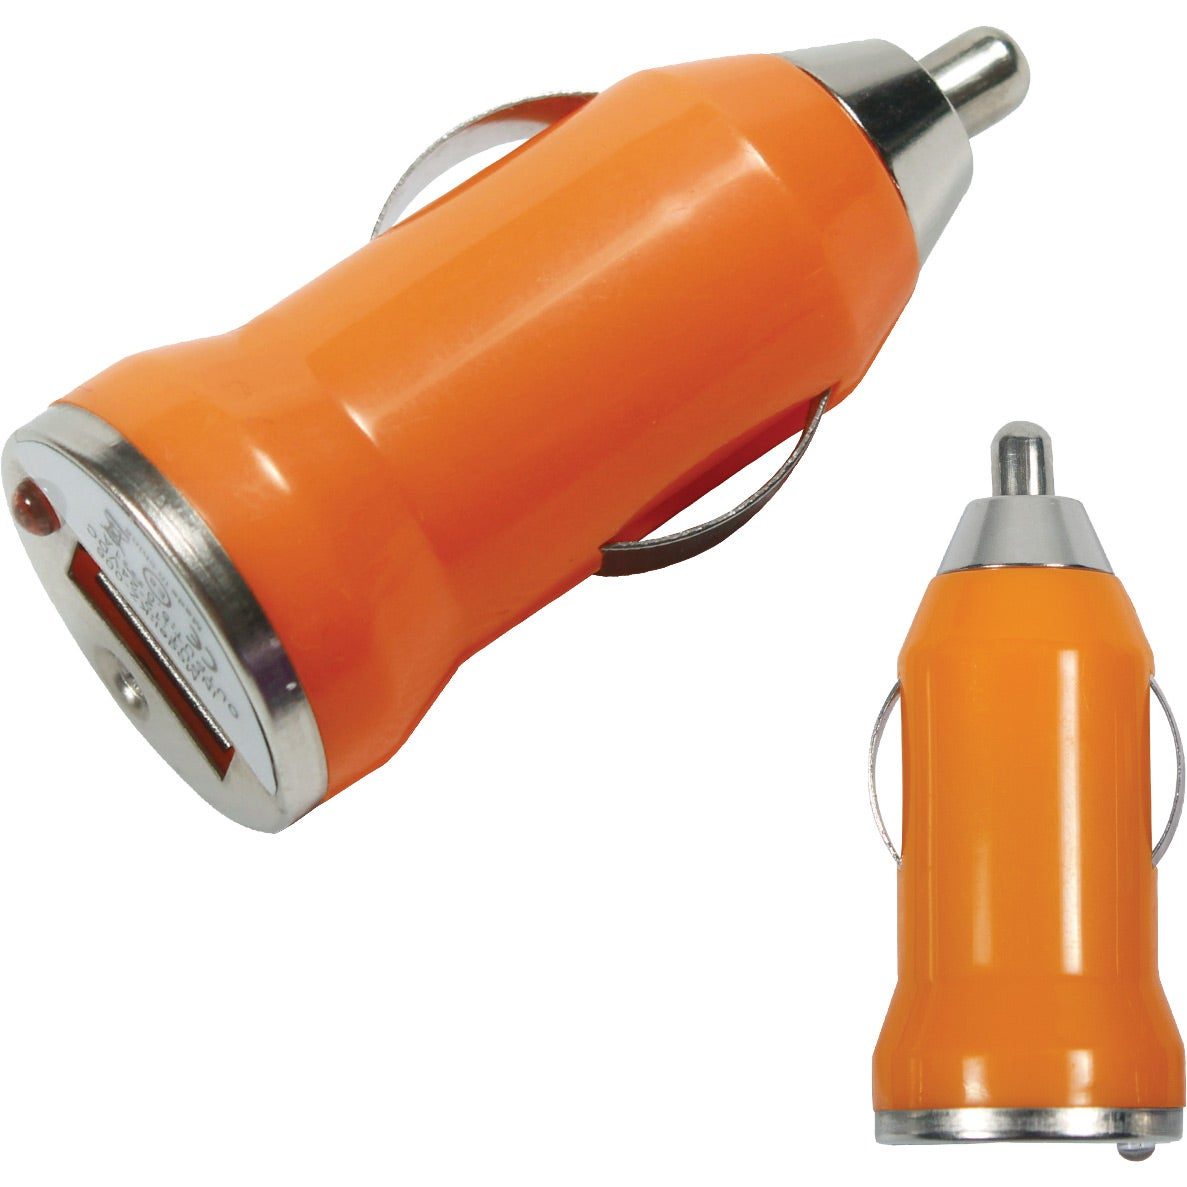 Colored usb car charger - The Bullet Usb Car Charger Features